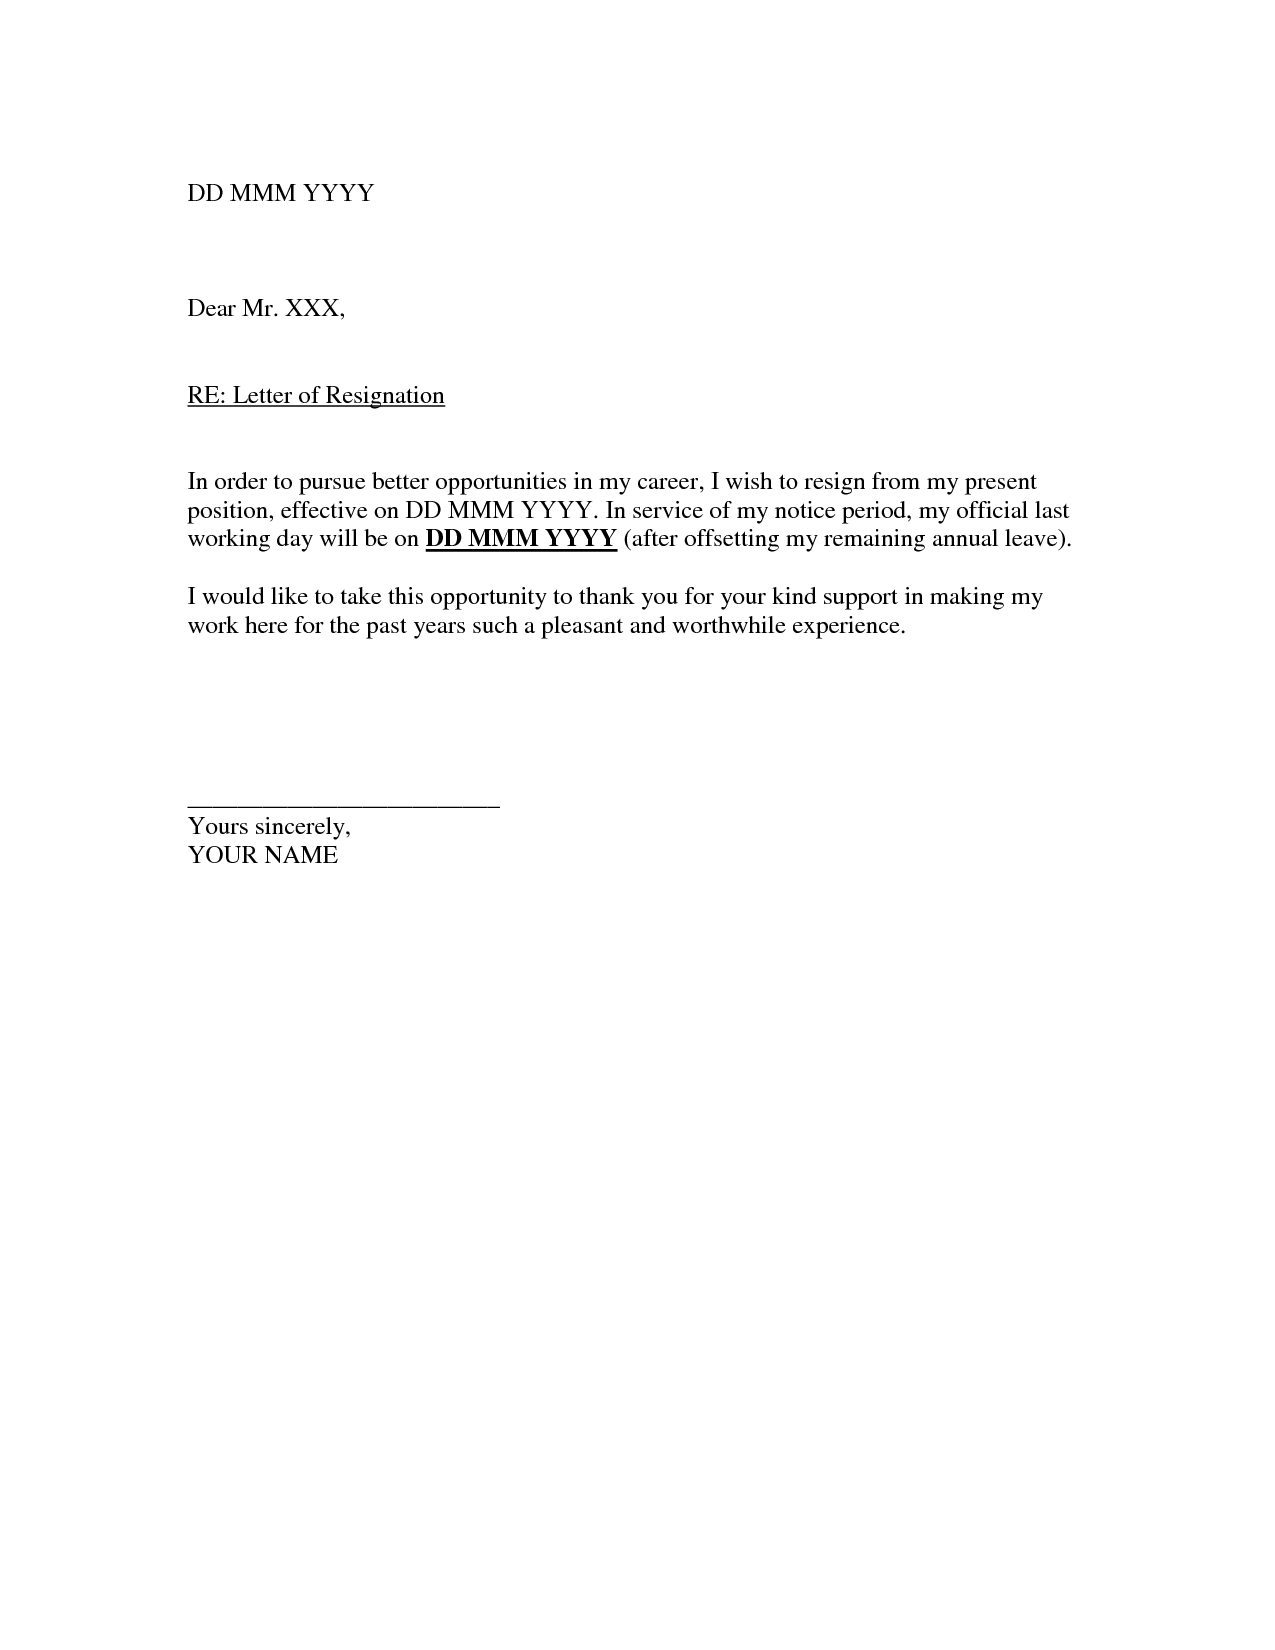 letter of resignation templates koni polycode co